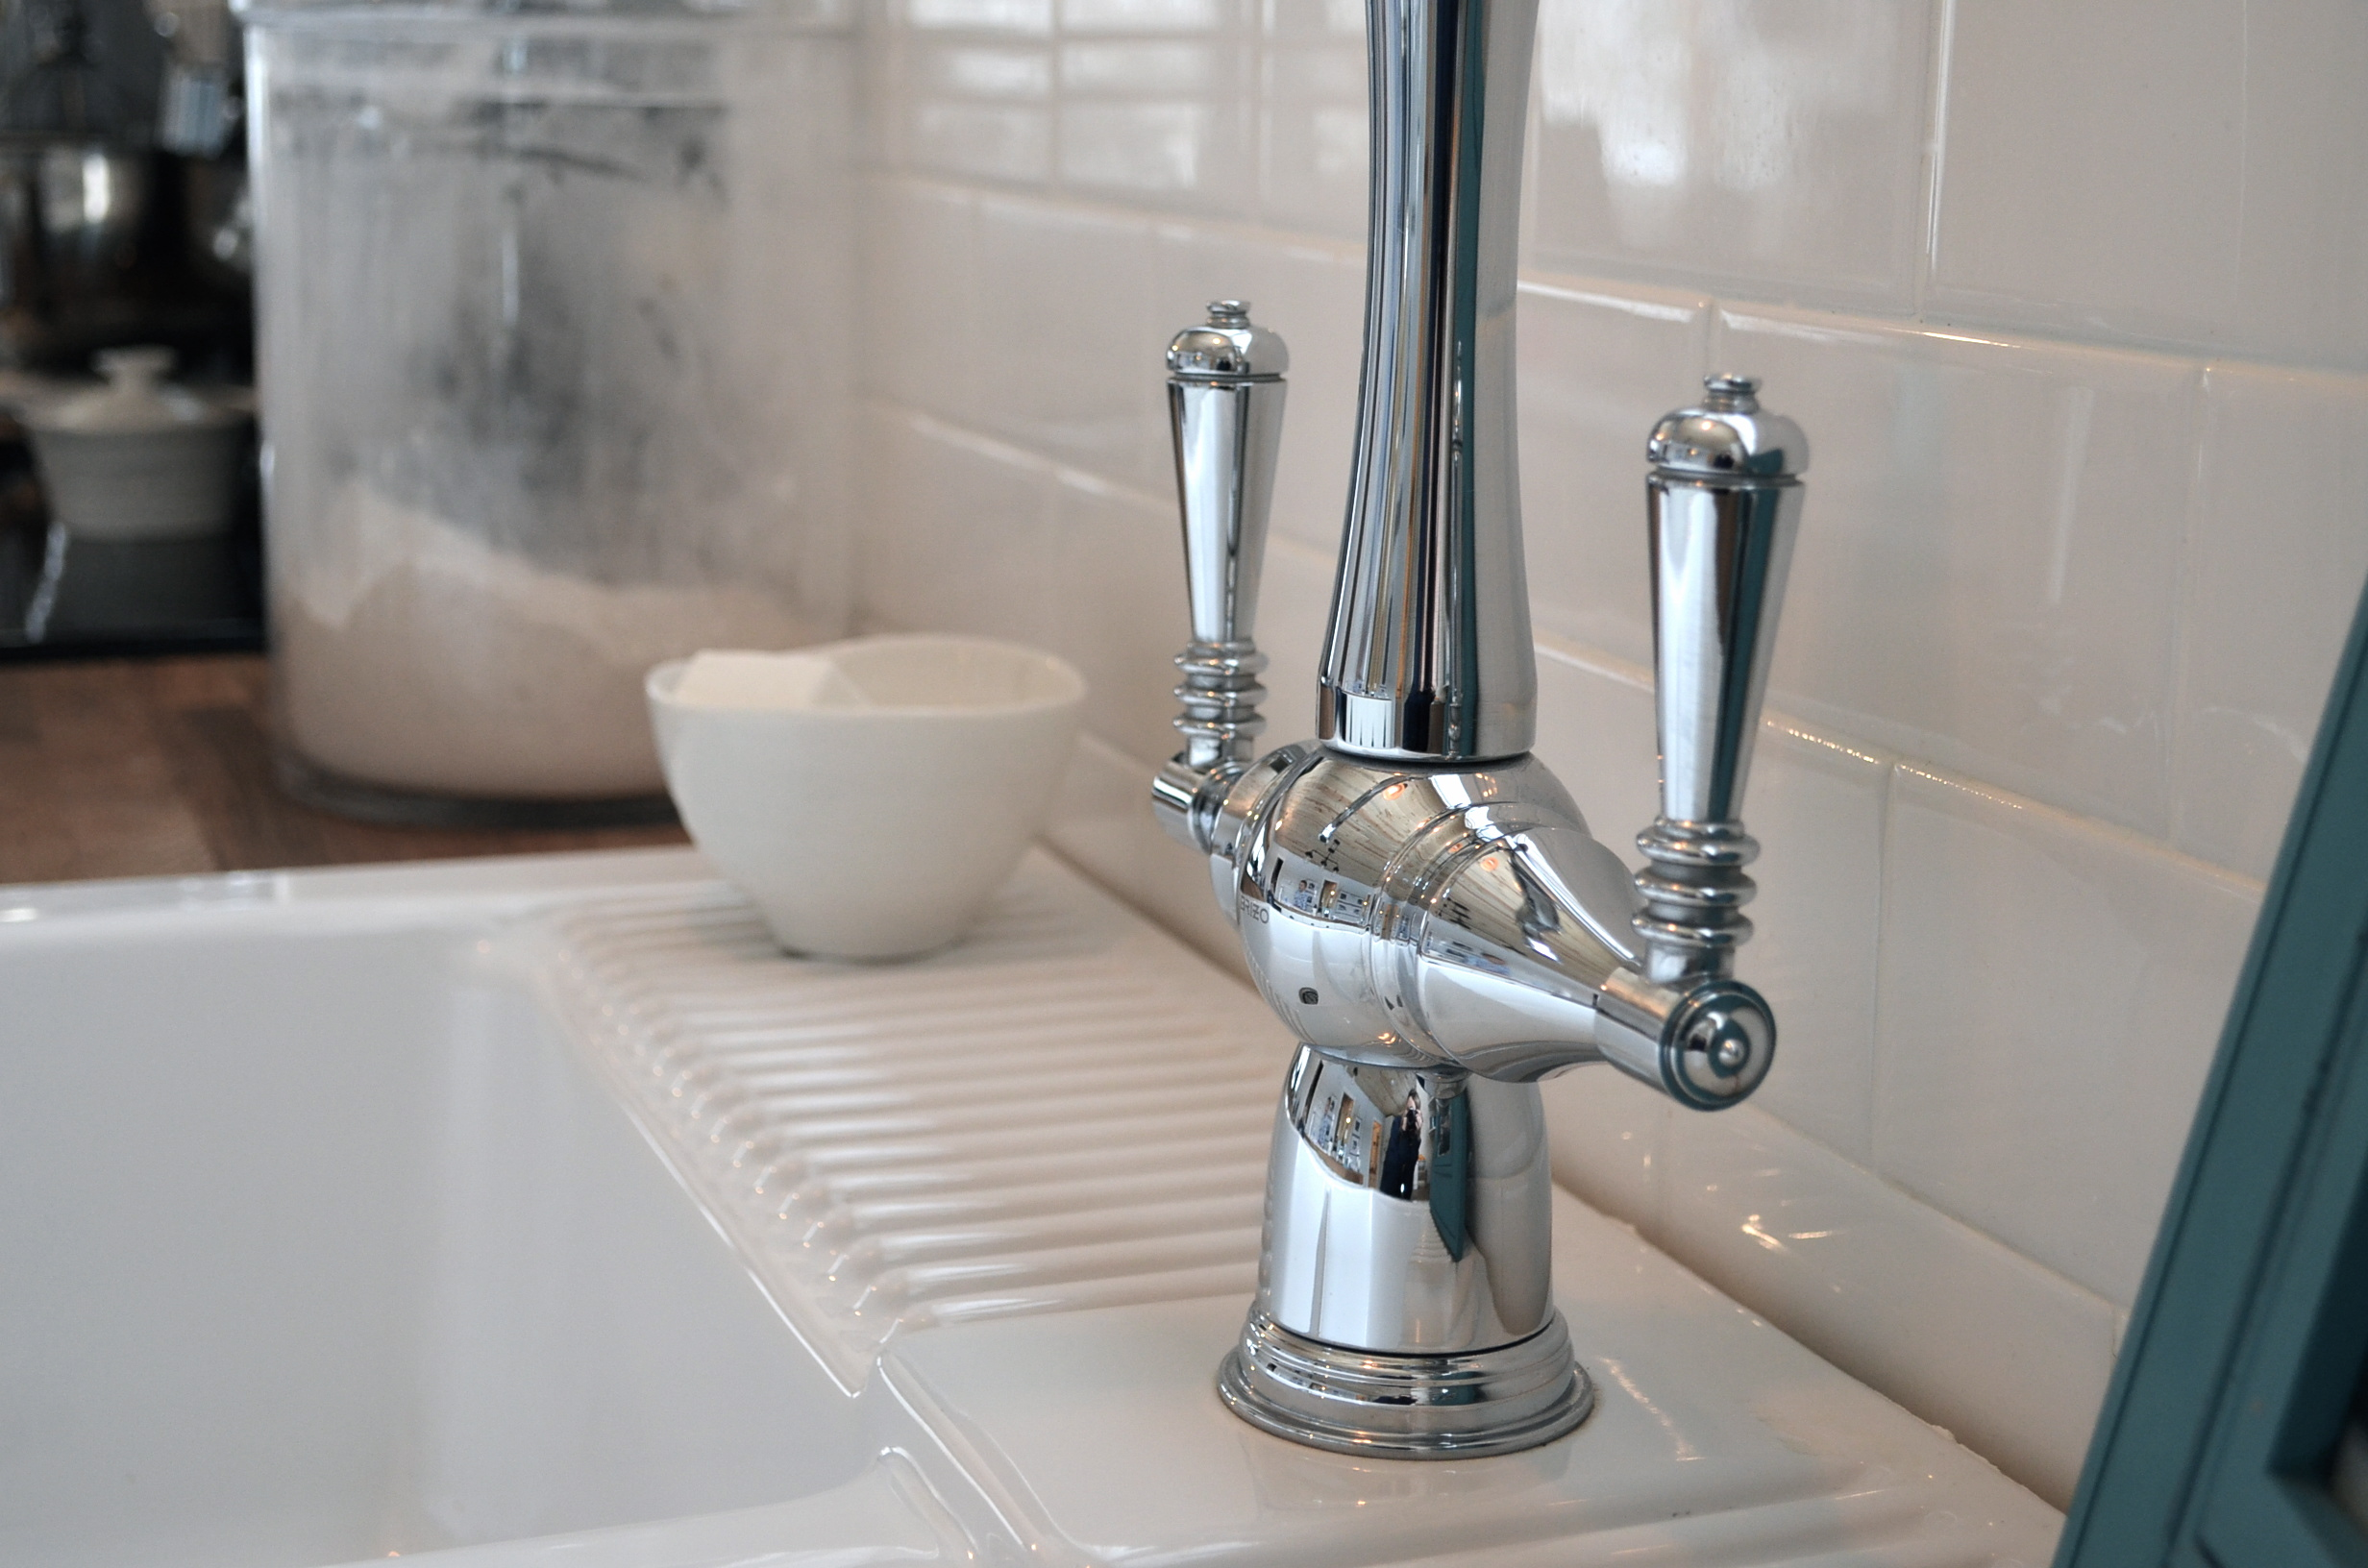 how to create a glam country farmhouse kitchen brizo the homemade farm brizo kitchen faucets I went with the Two Handle Tresa faucet It s a traditional look with timeless style Old world s European inspired but with modern Brizo details that